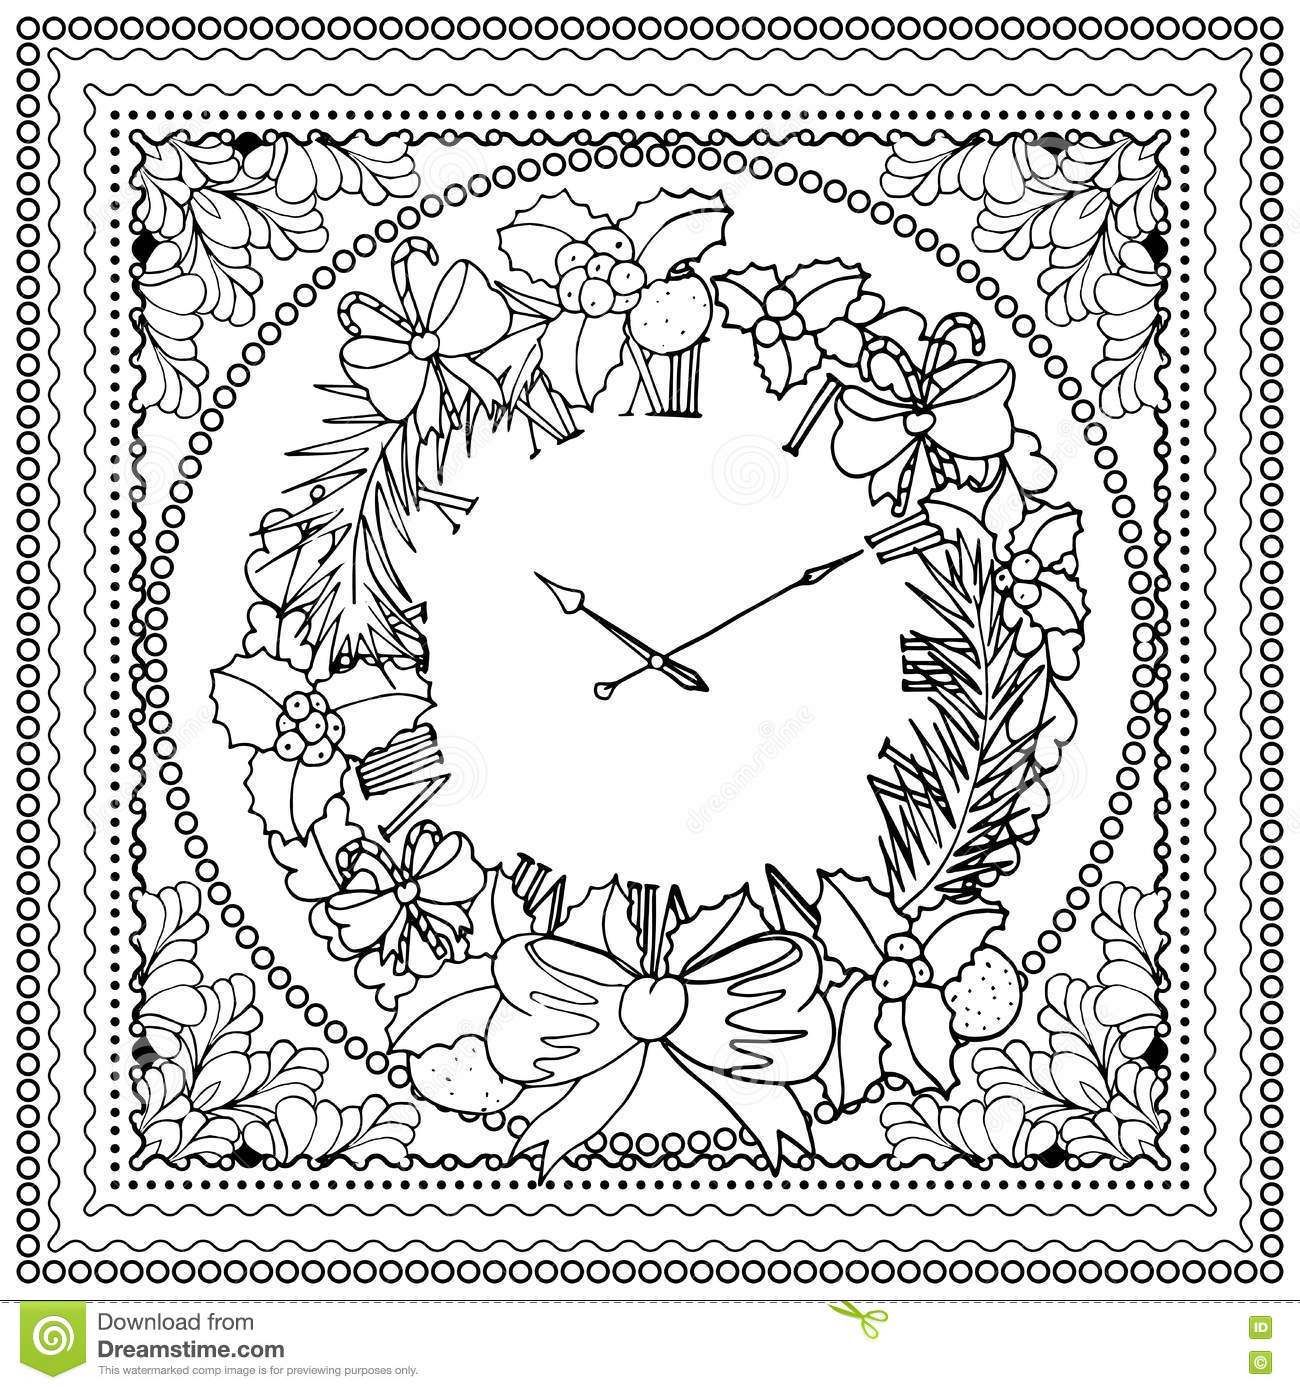 Merry Christmas And Happy New Year Coloring Pages With Black Vector Mono Color Illustration For